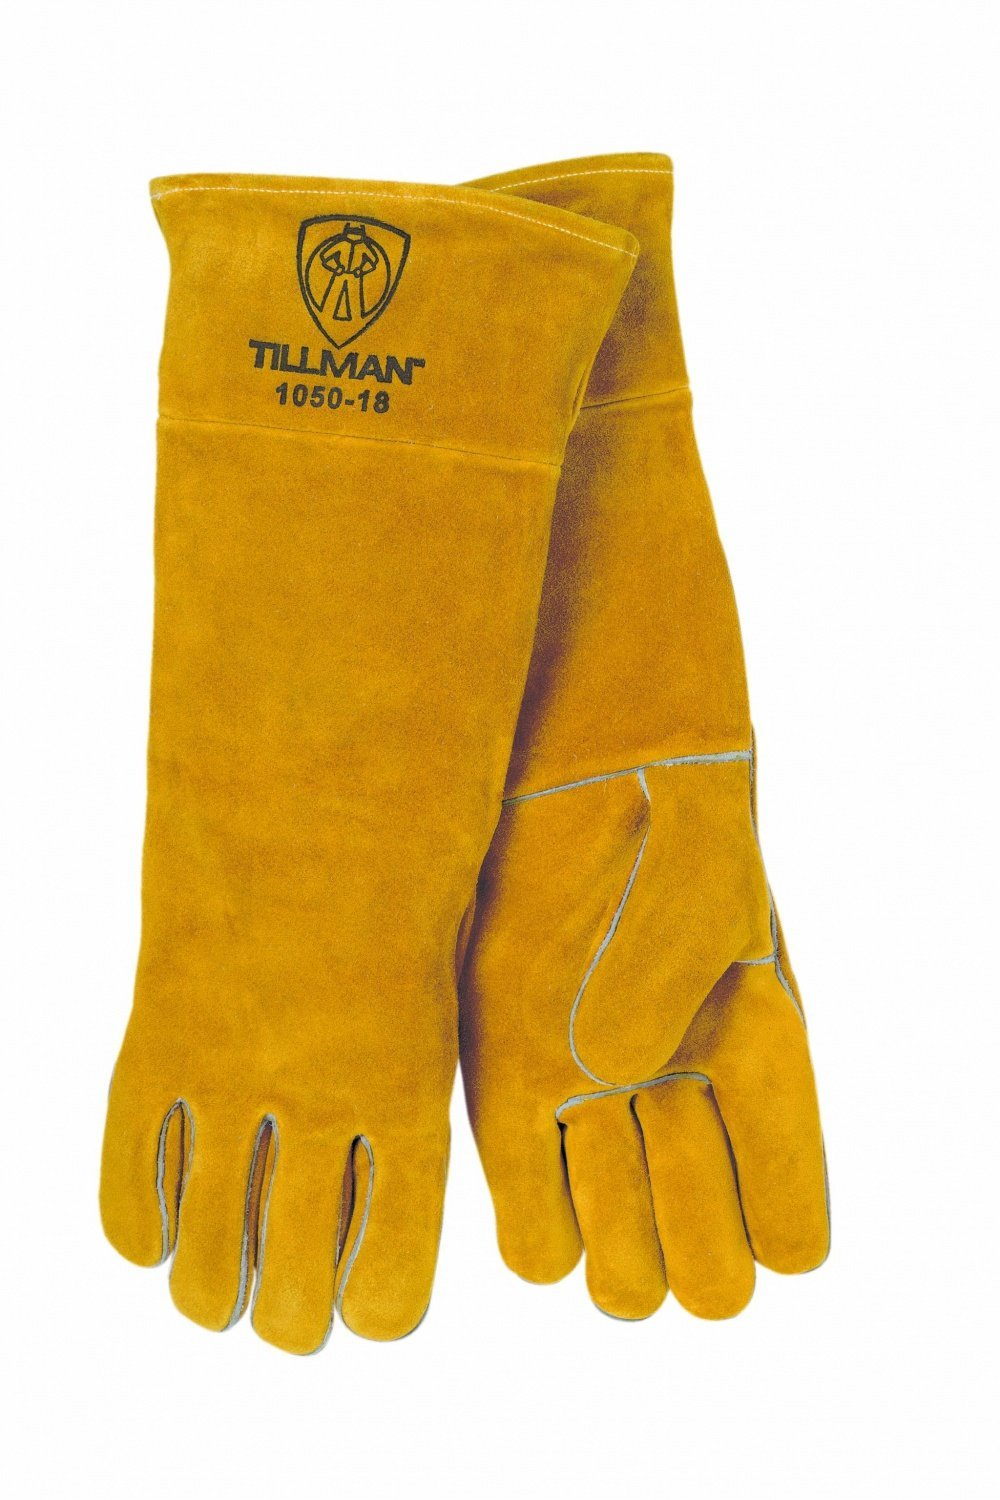 Tillman Premium Split Cowhide Welding Gloves